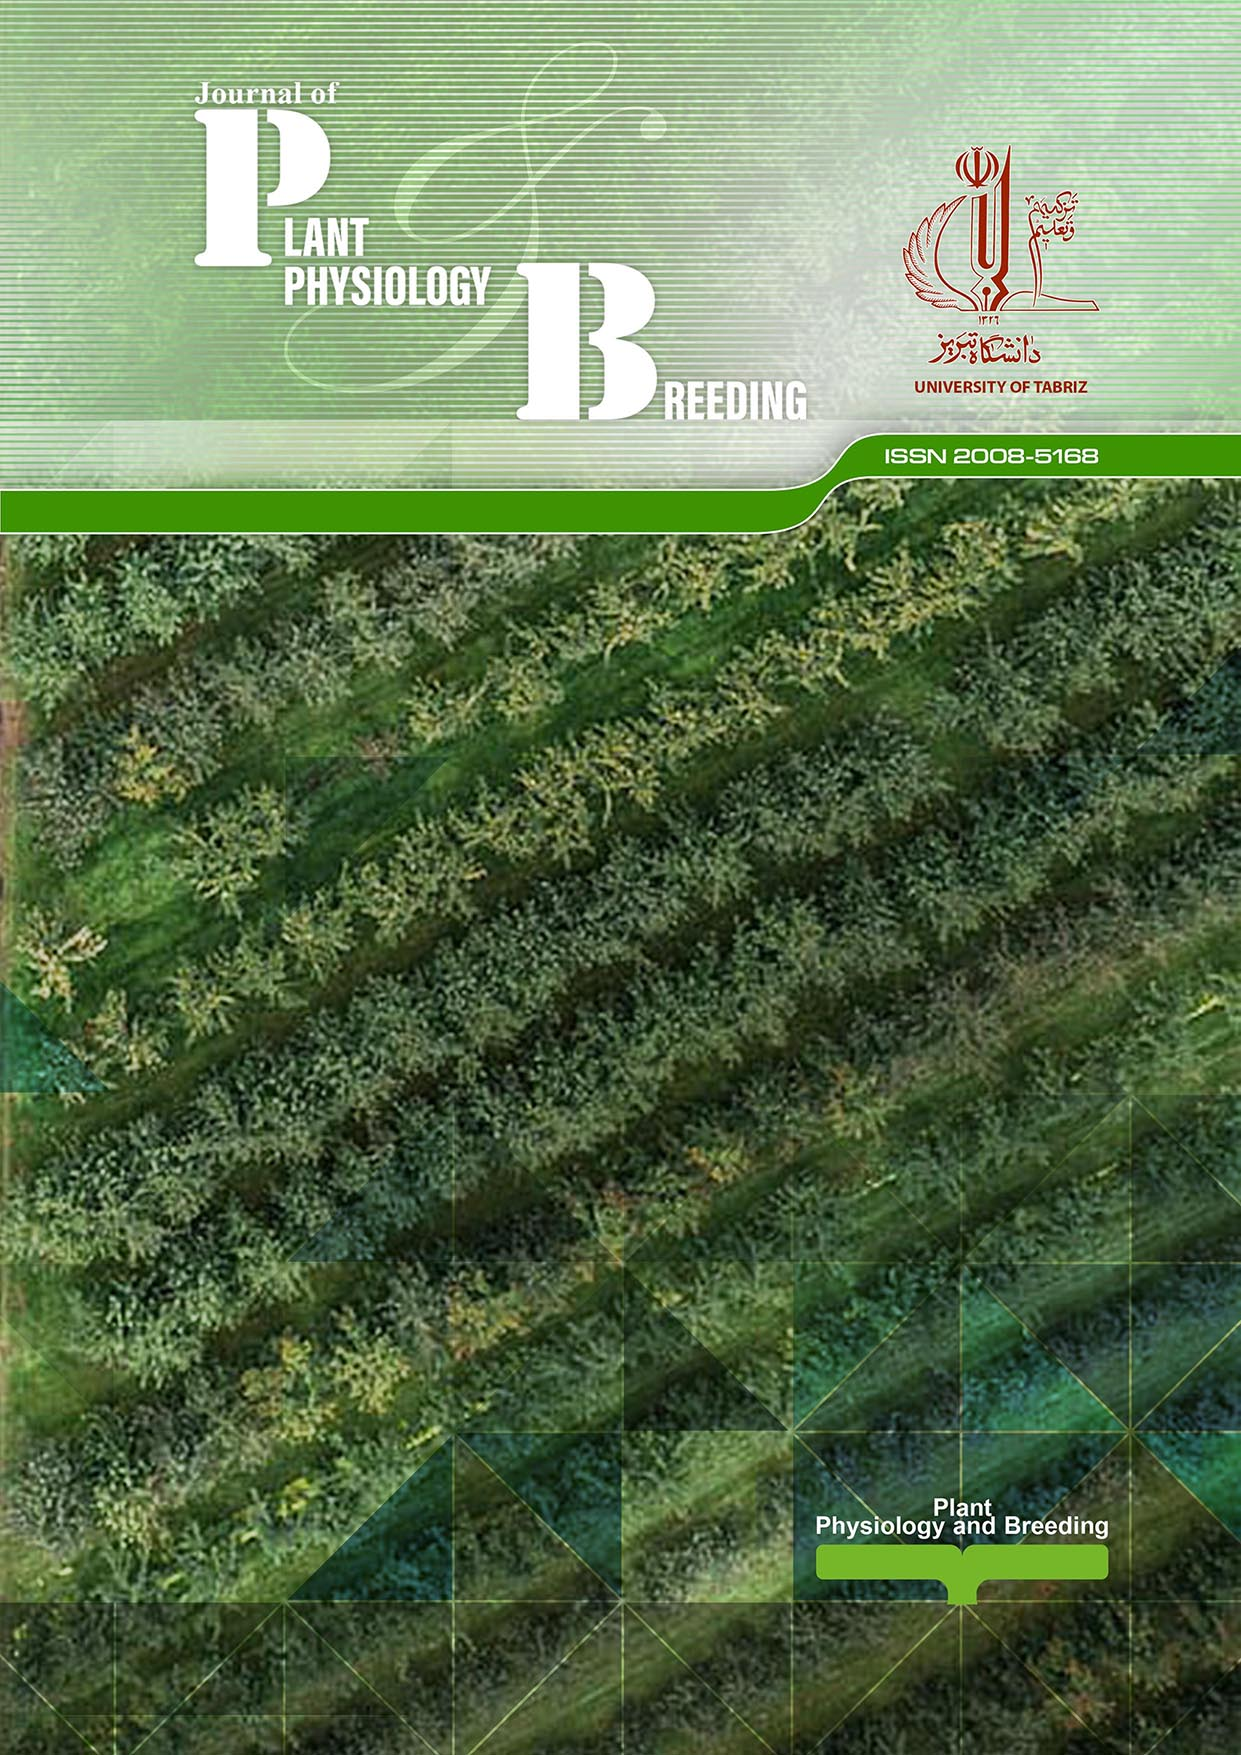 Journal of Plant Physiology & Breeding